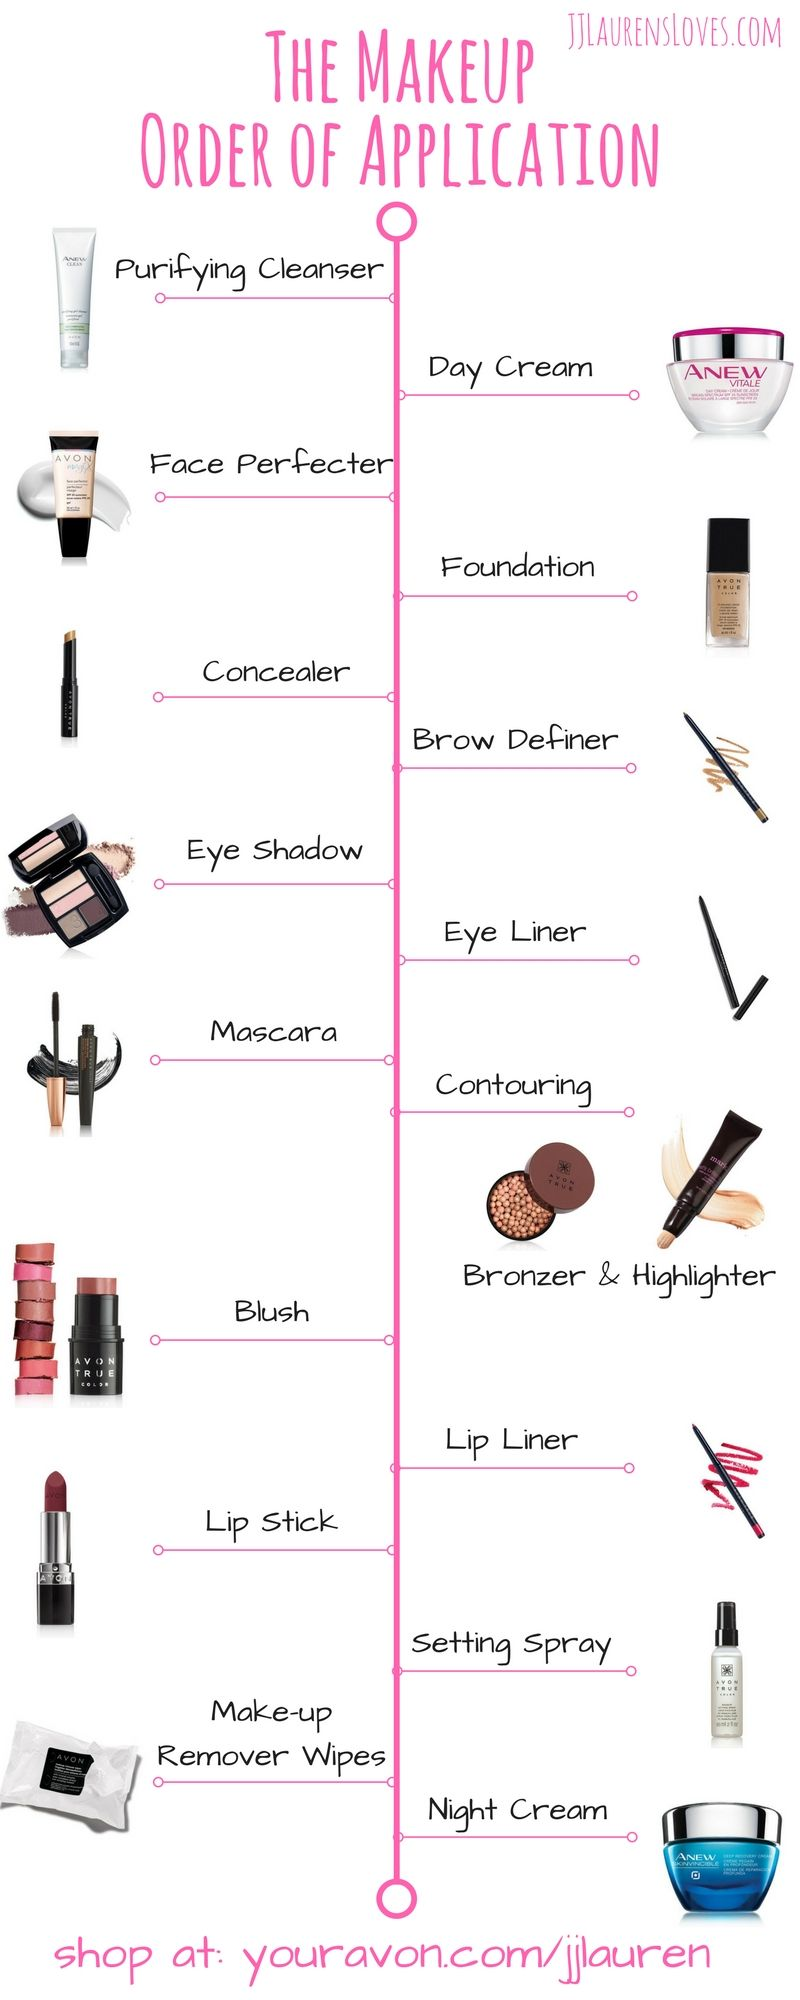 Makeup Order Order Of Makeup Application: Makeup Order Of Application